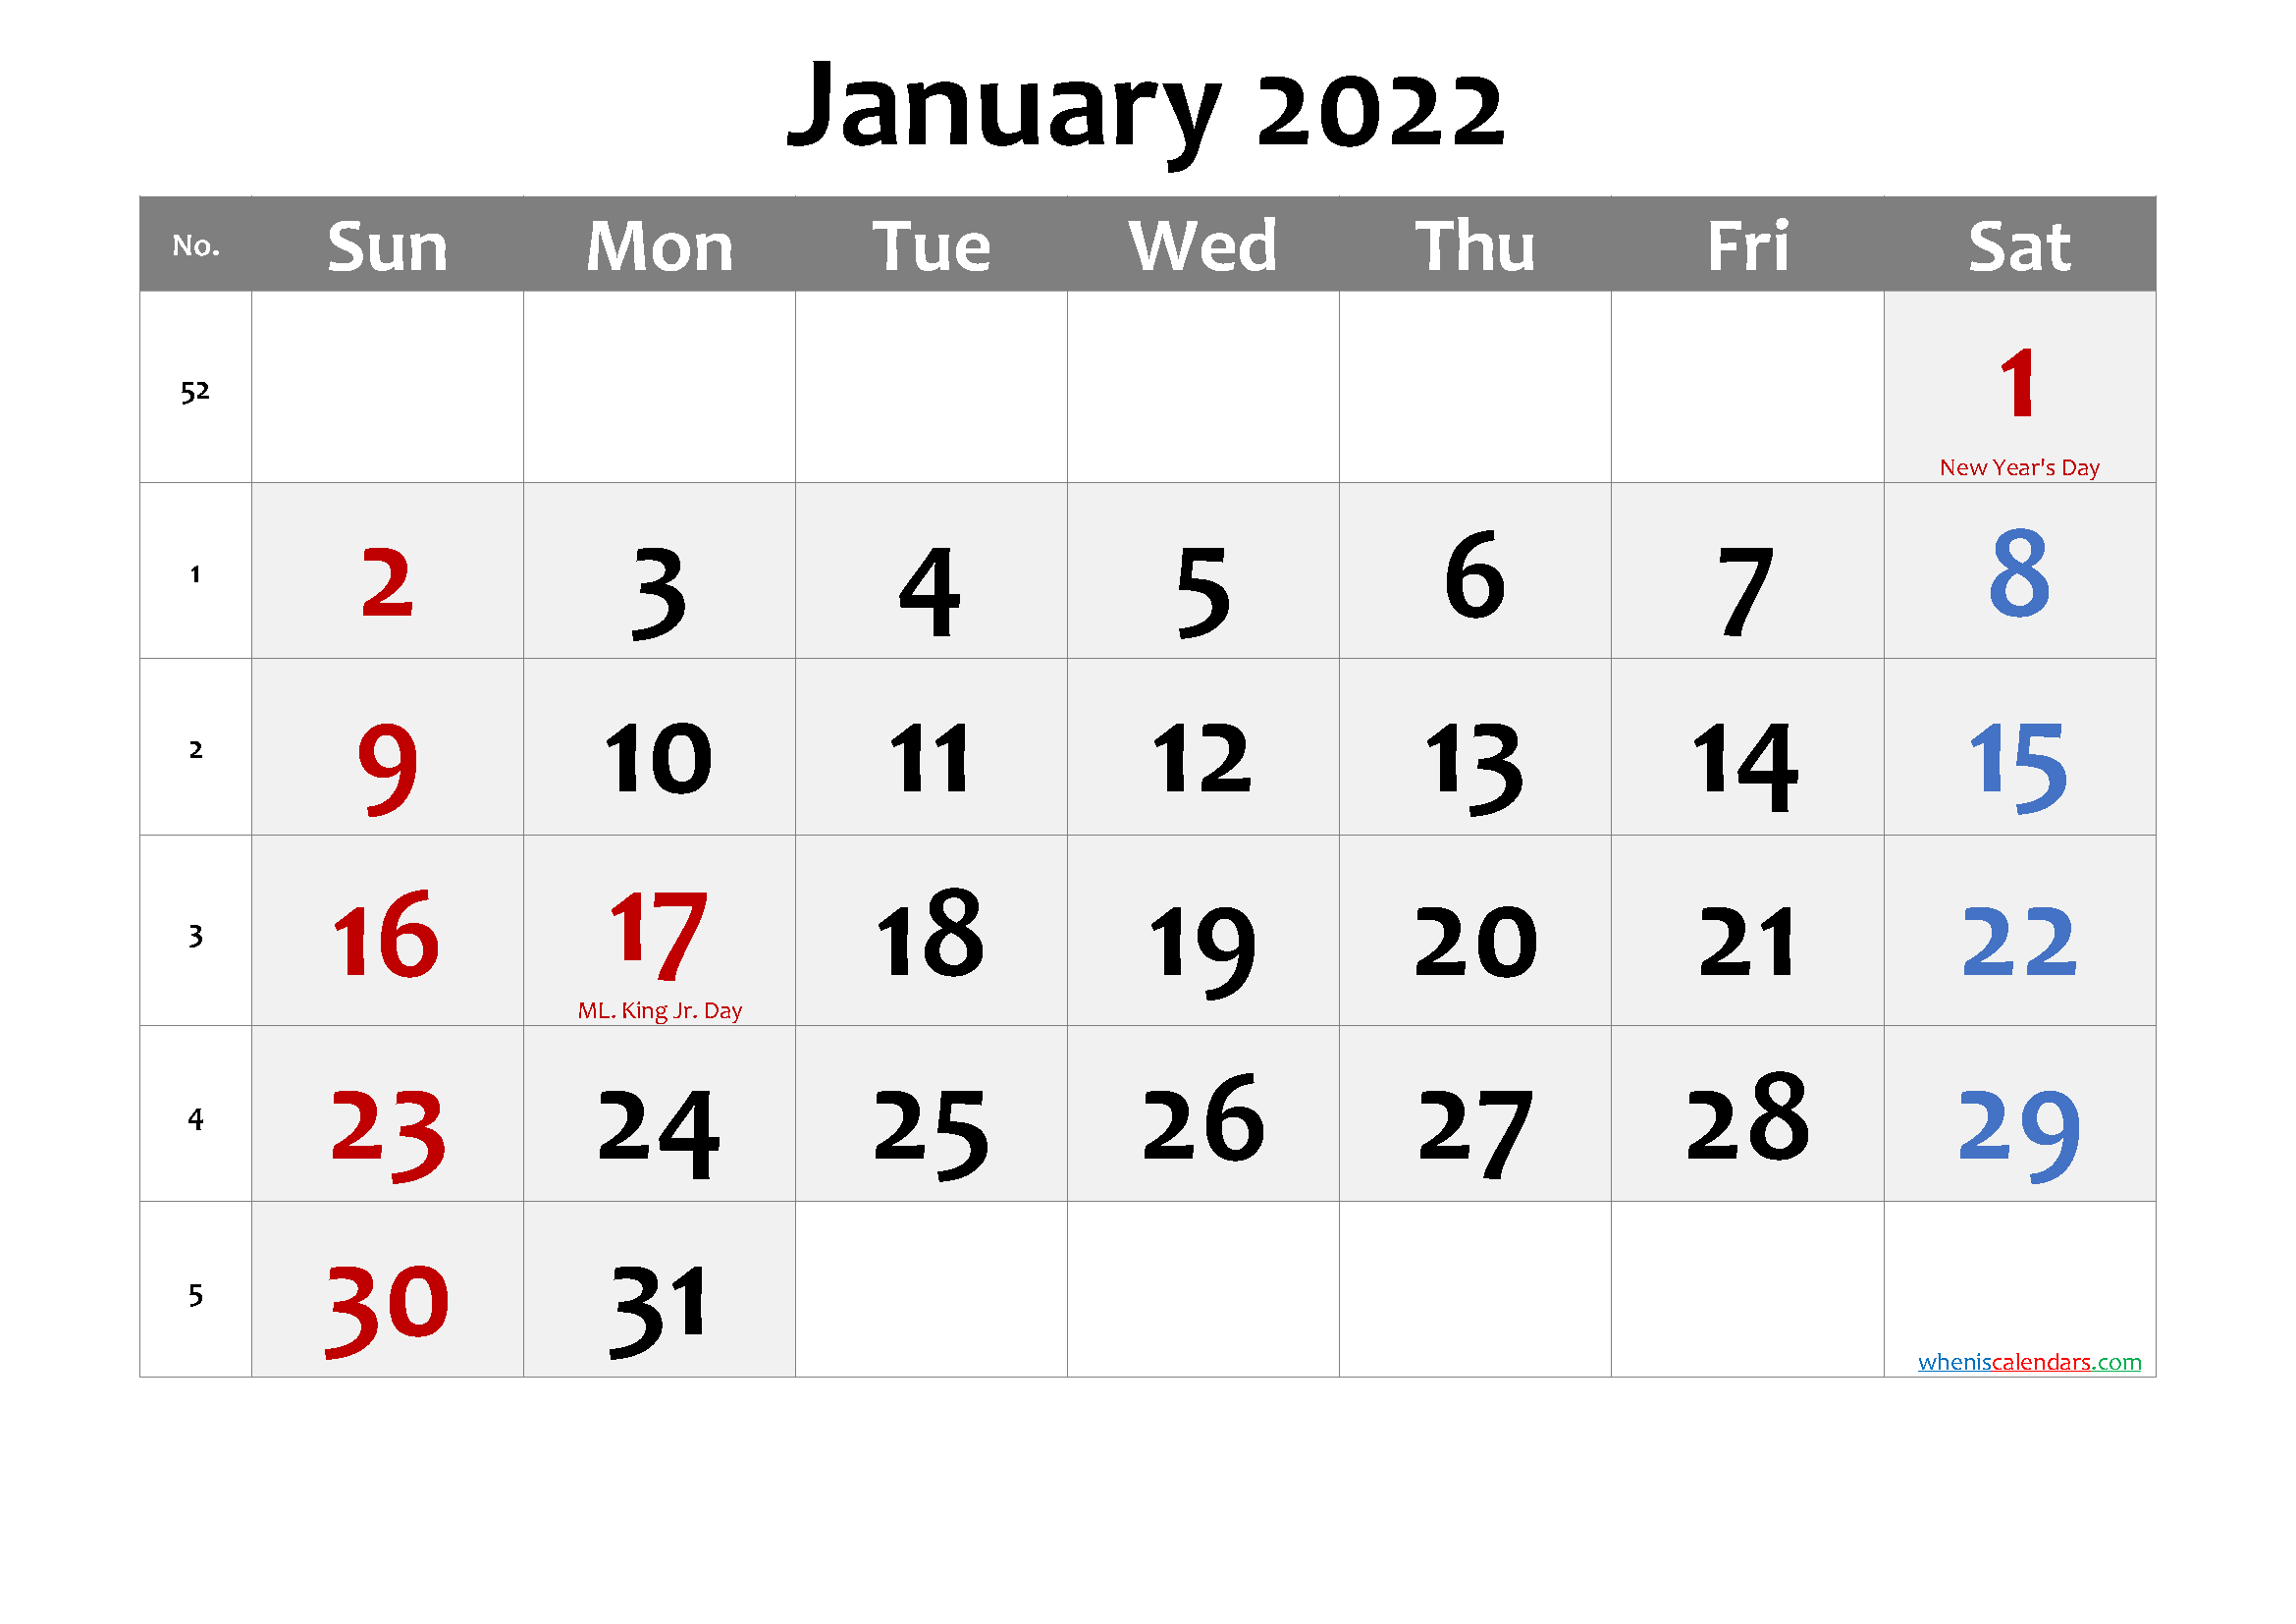 January 2022 Calendar with Holidays Printable